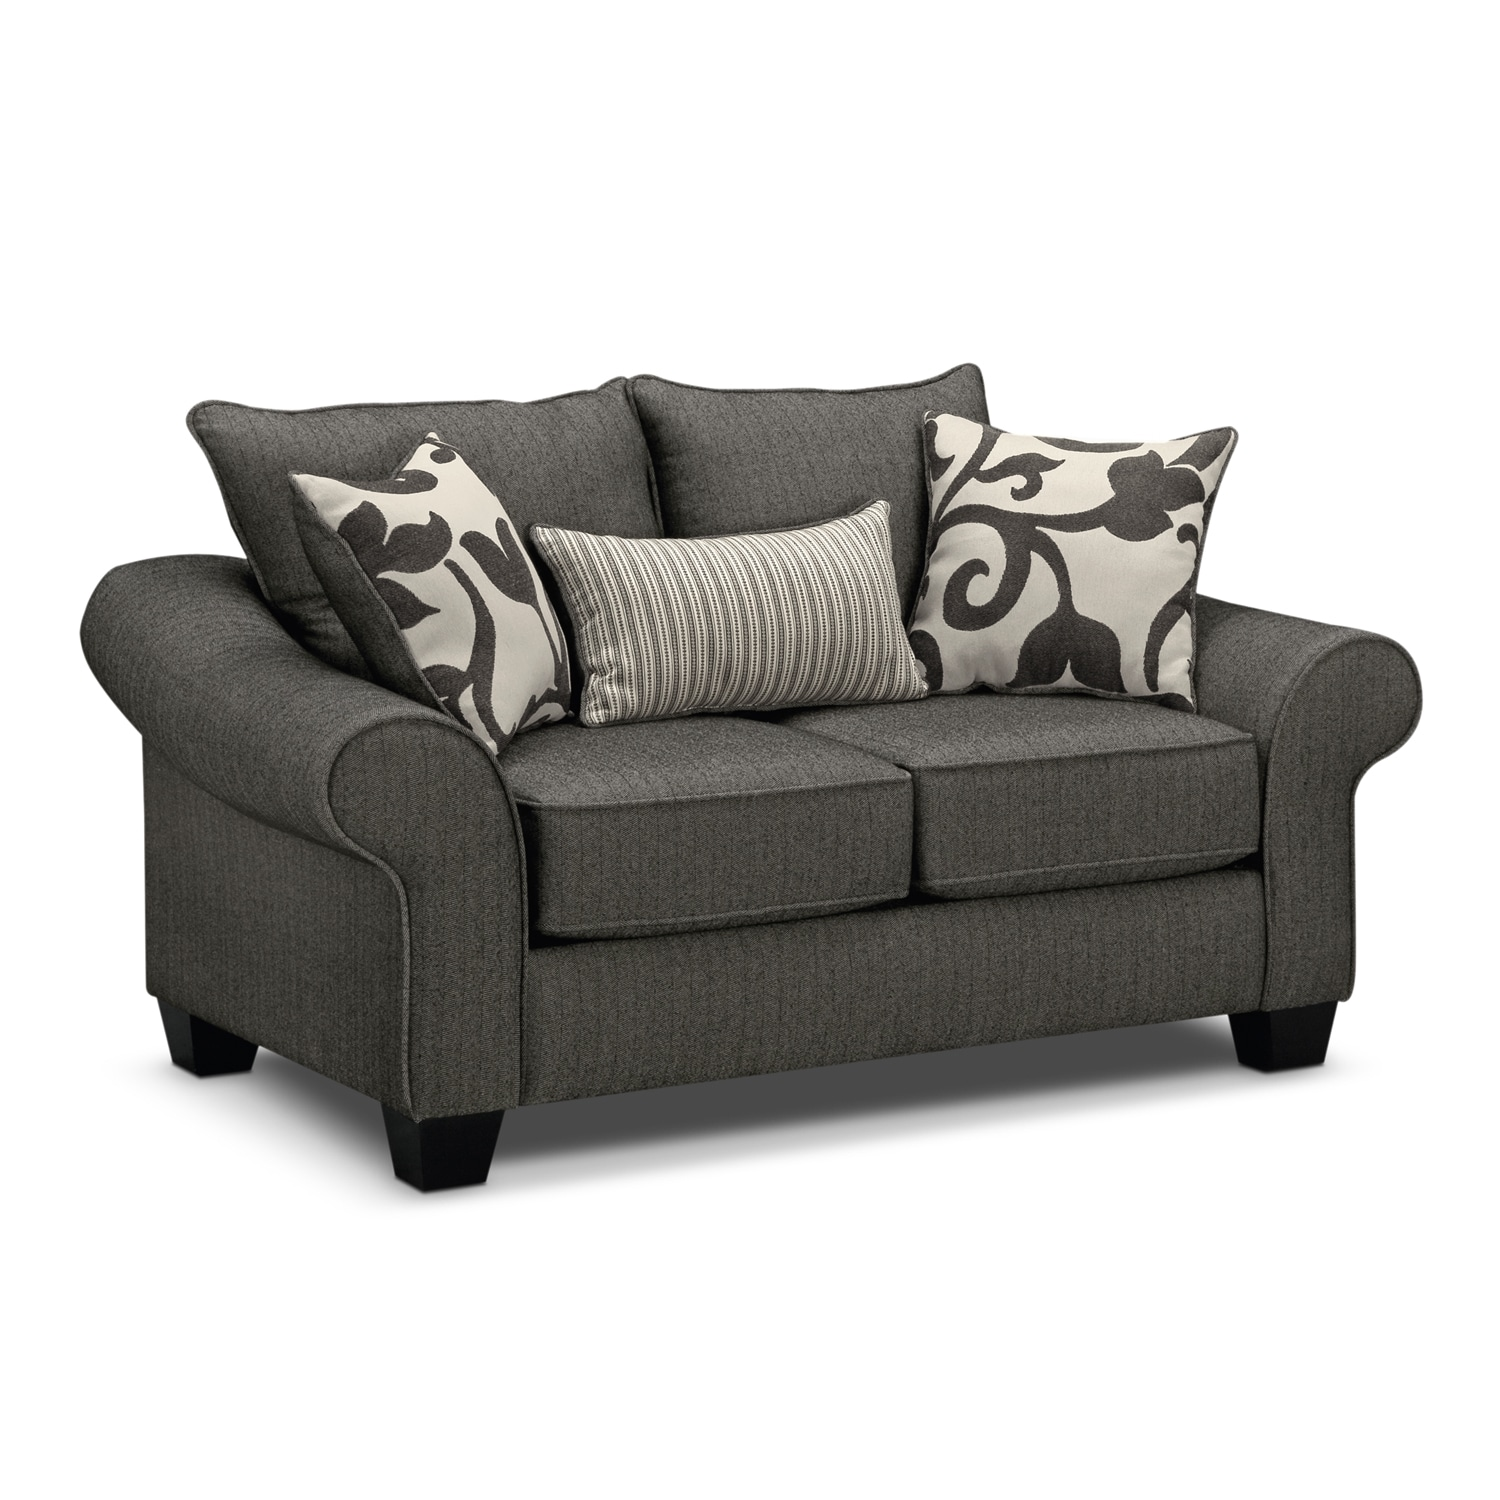 Colette Sofa Loveseat And Accent Chair Set Gray Value